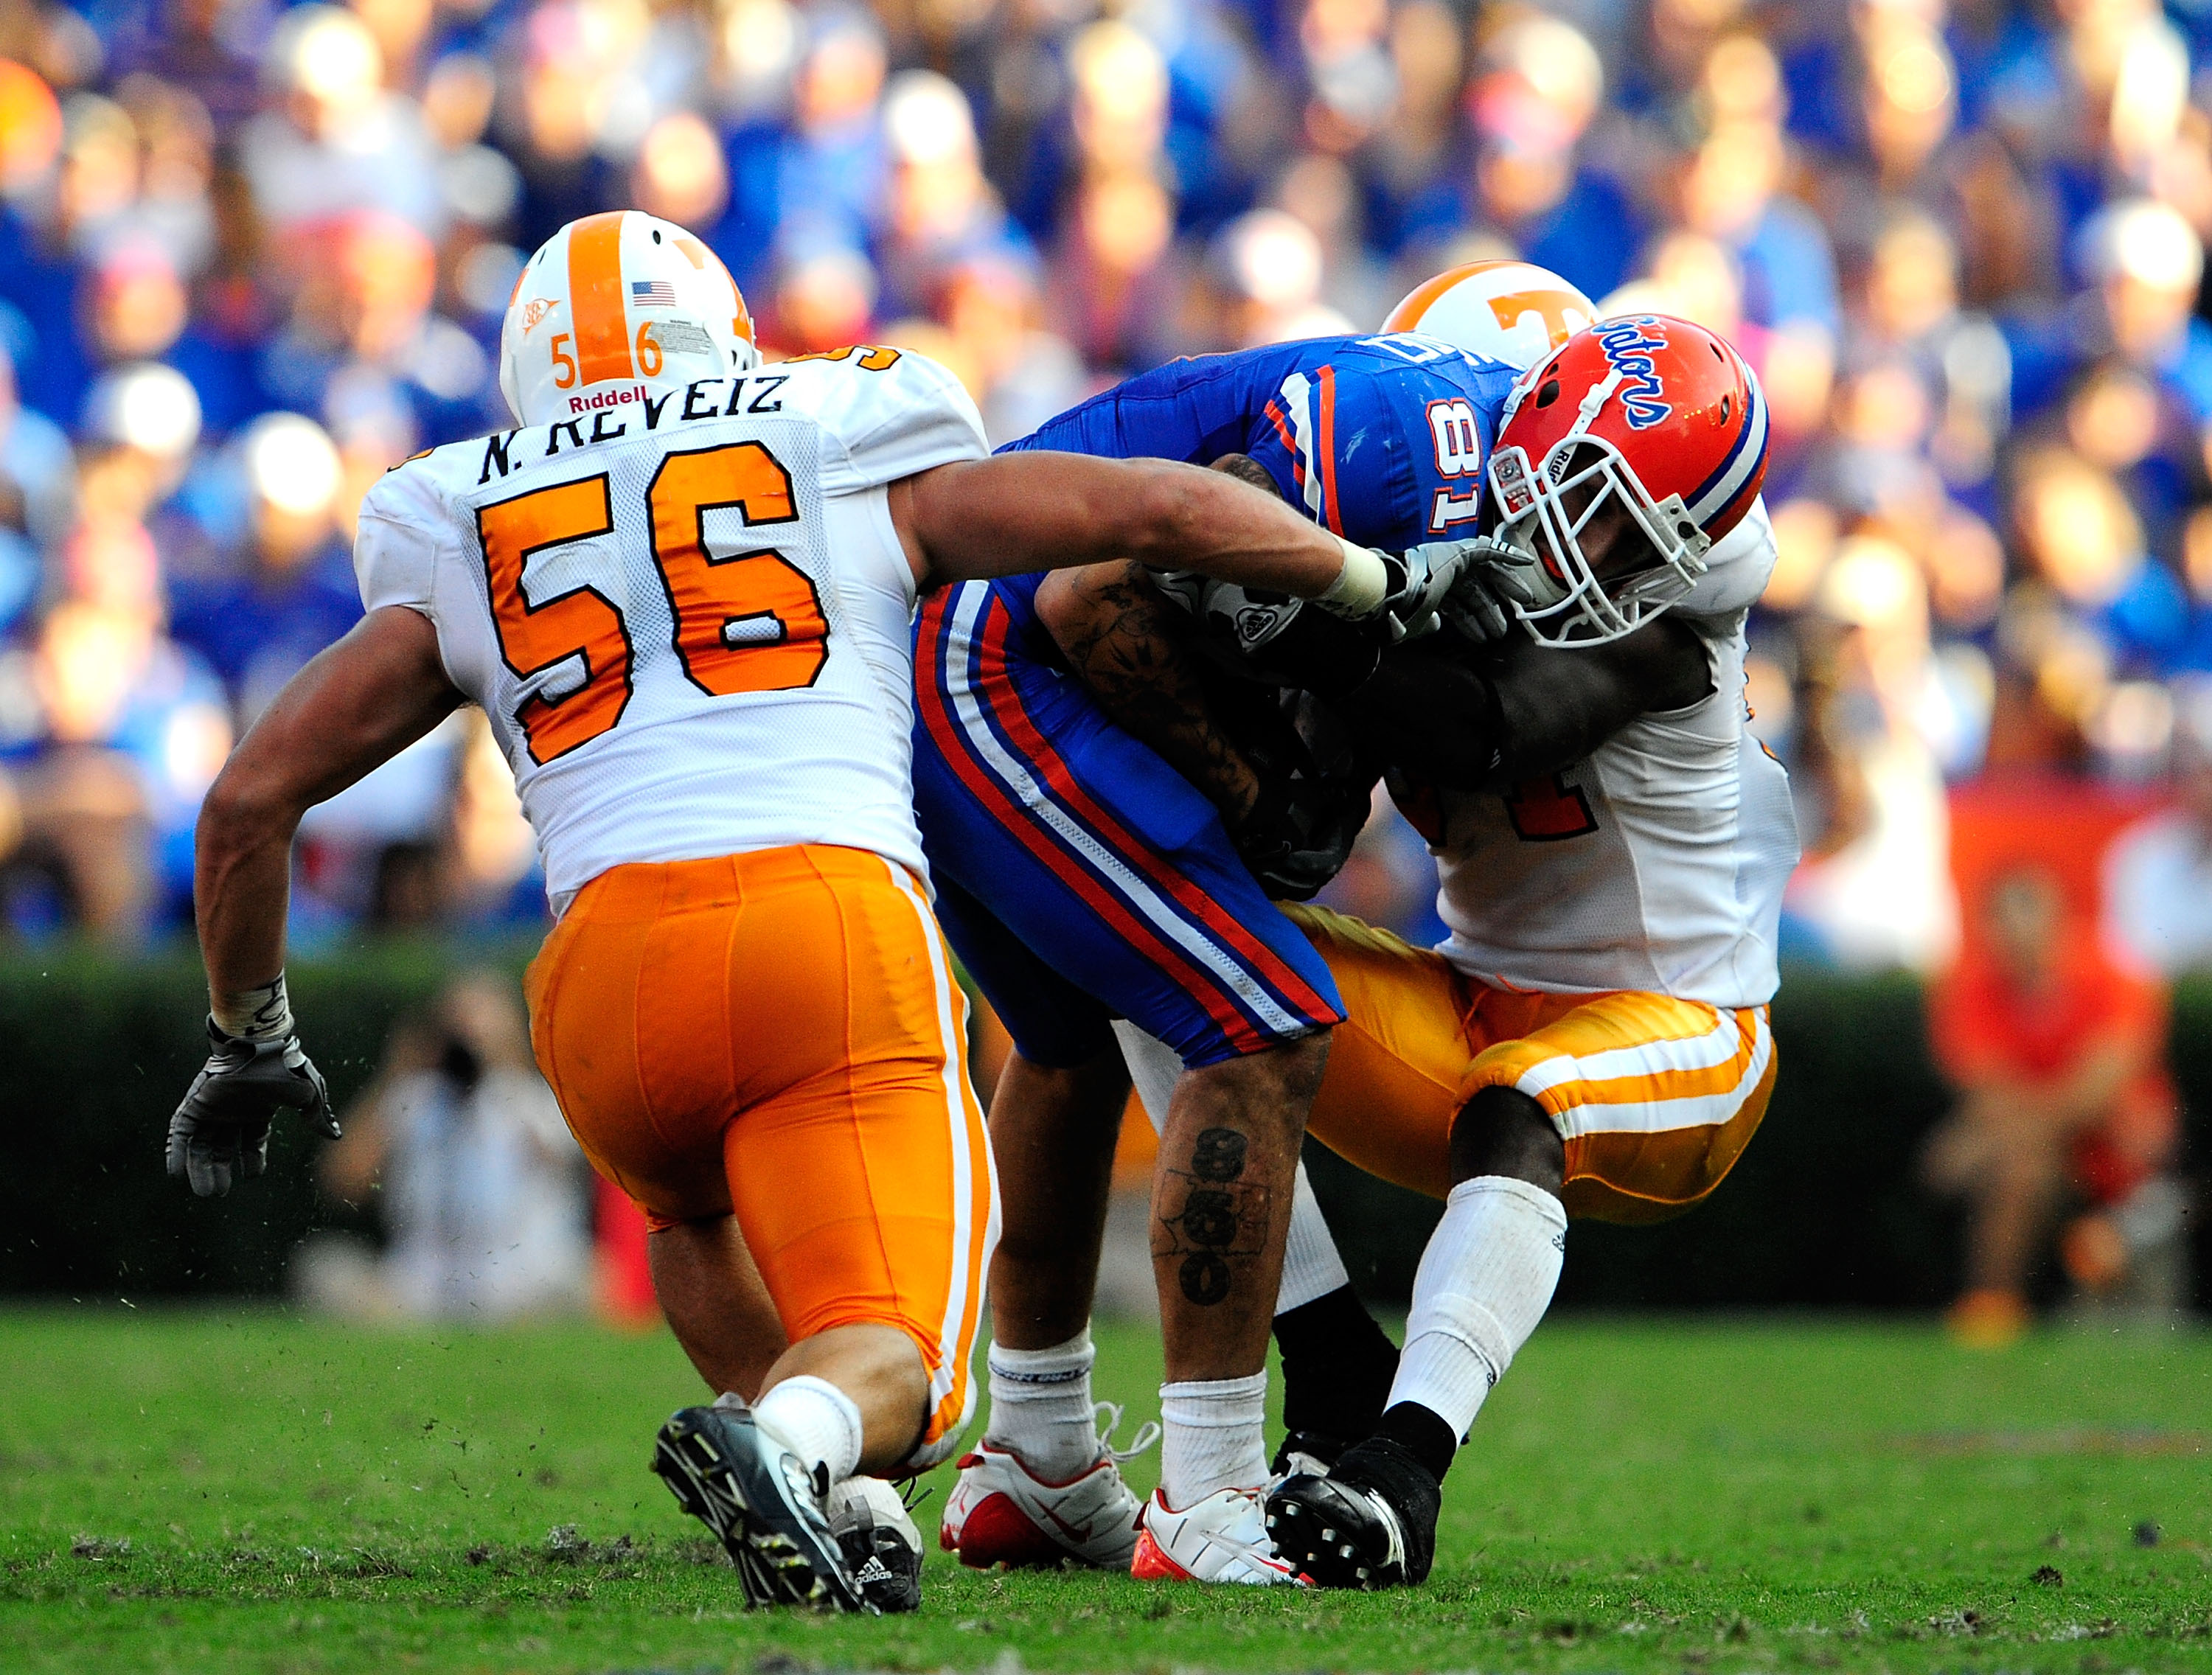 GAINESVILLE, FL - SEPTEMBER 19:  Aaron Hernandez #81 of the Florida Gators is tackled by Nick Reveiz #56 of the Tennessee Volunteers during the game at Ben Hill Griffin Stadium on September 19, 2009 in Gainesville, Florida.  (Photo by Sam Greenwood/Getty